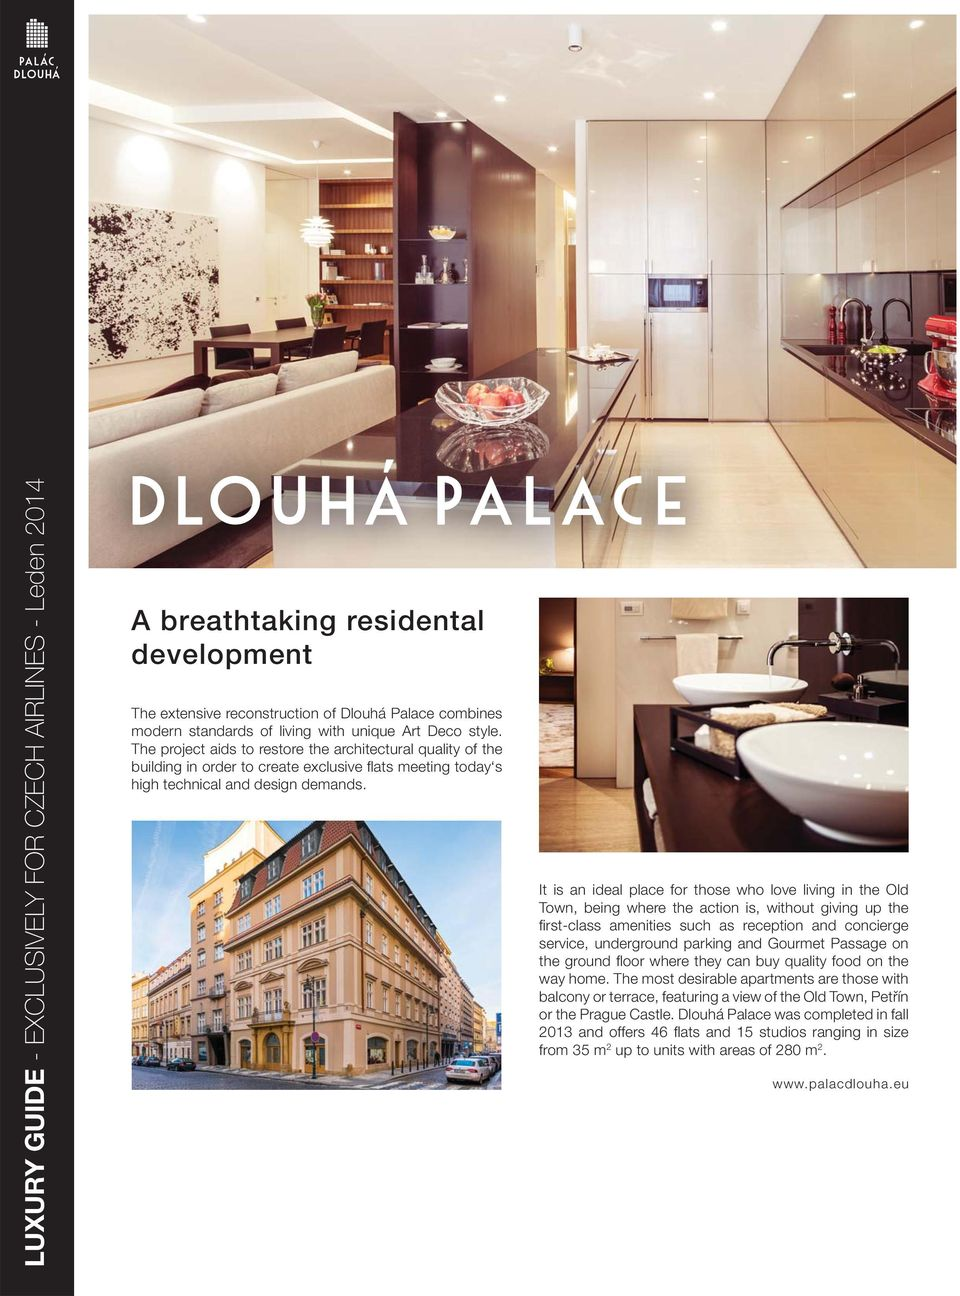 It is an ideal place for those who love living in the Old Town, being where the action is, without giving up the first-class amenities such as reception and concierge service, underground parking and